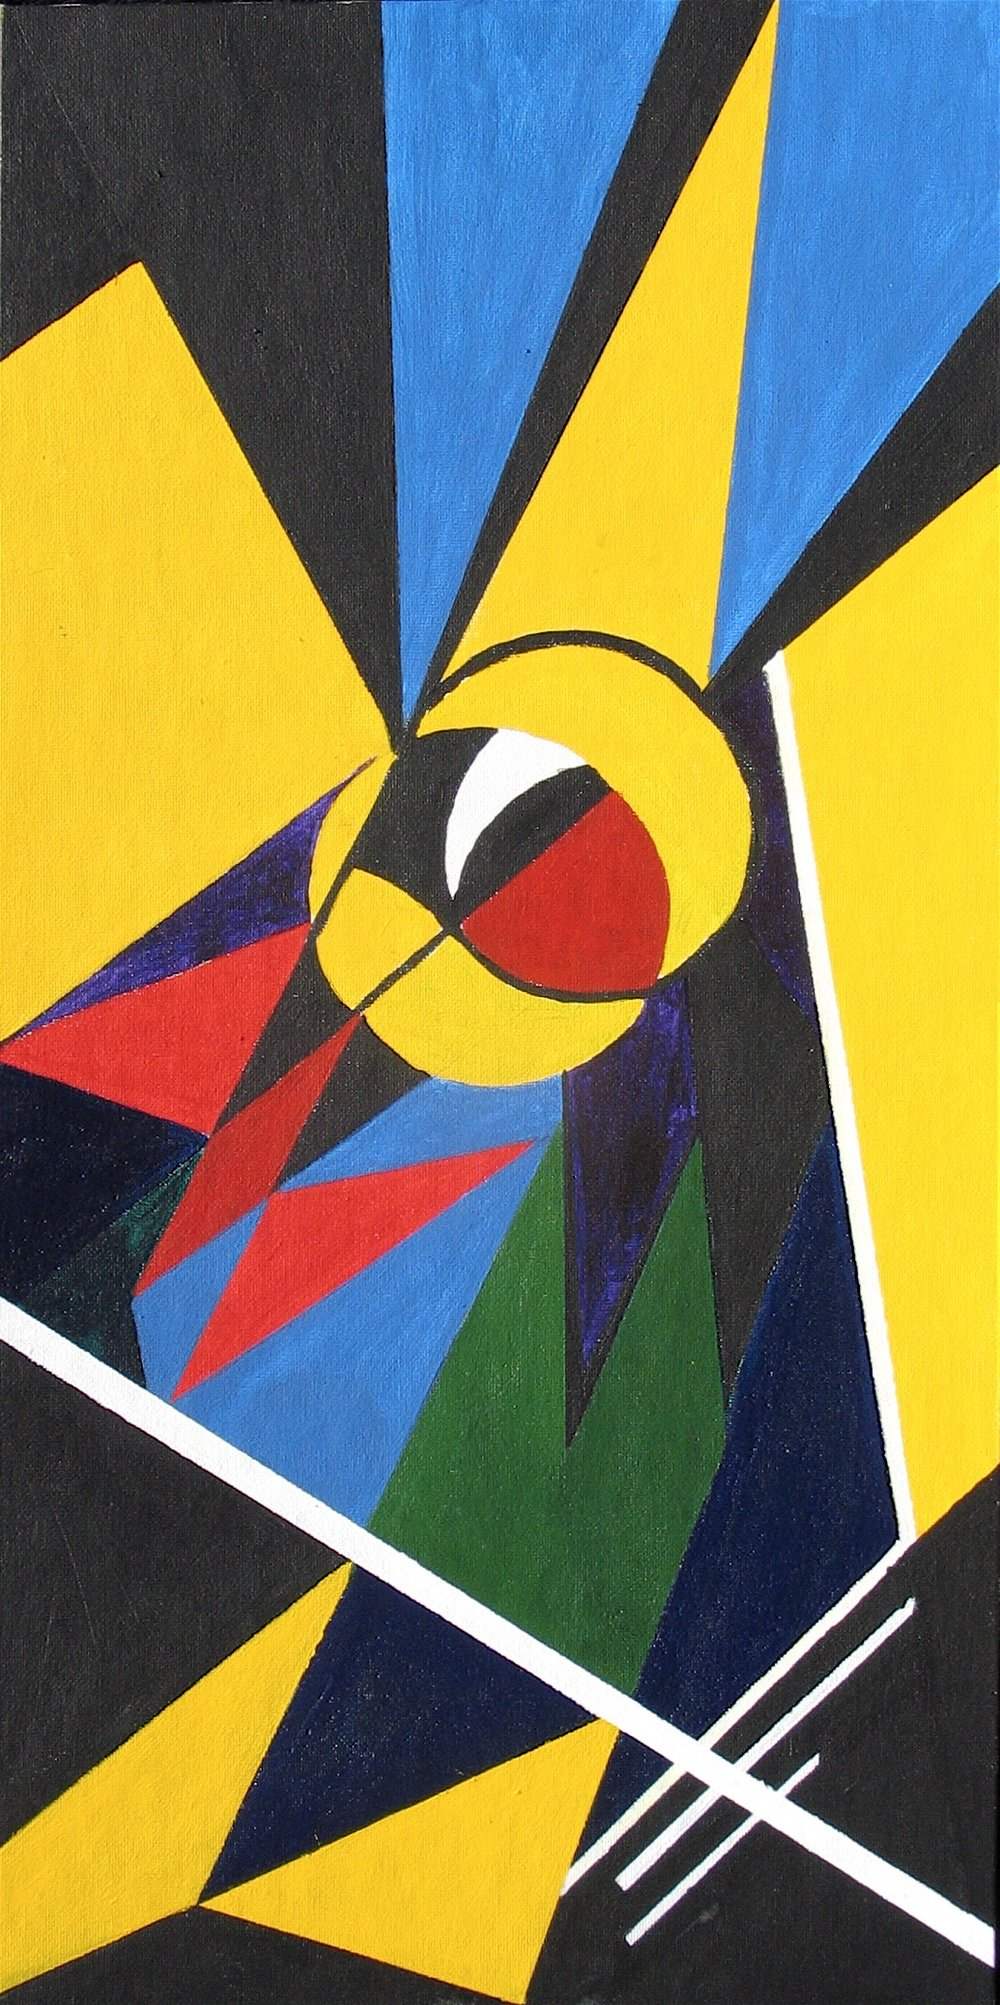 Bird's Eye : 30 X 61 cm acrylic on board